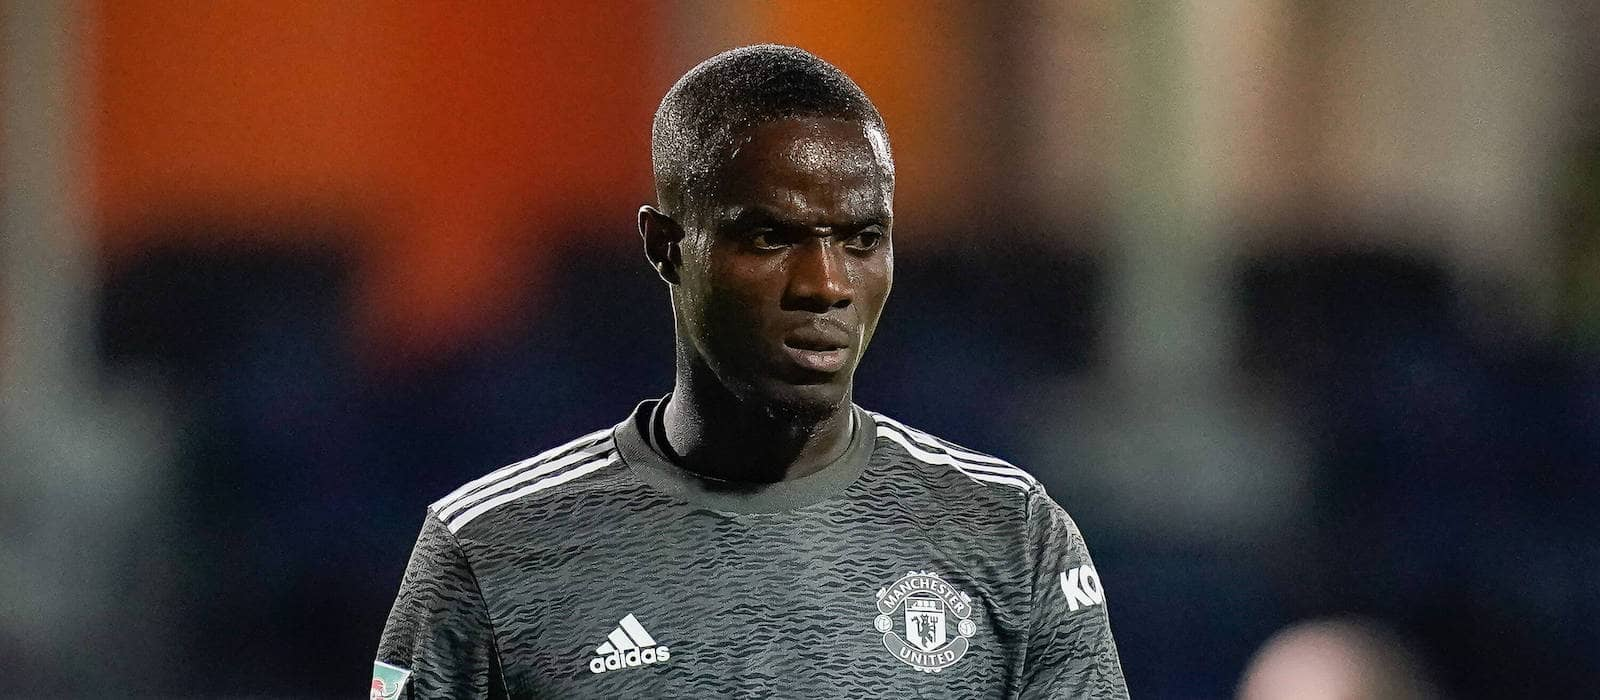 Fans want Eric Bailly sold due to constant injuries